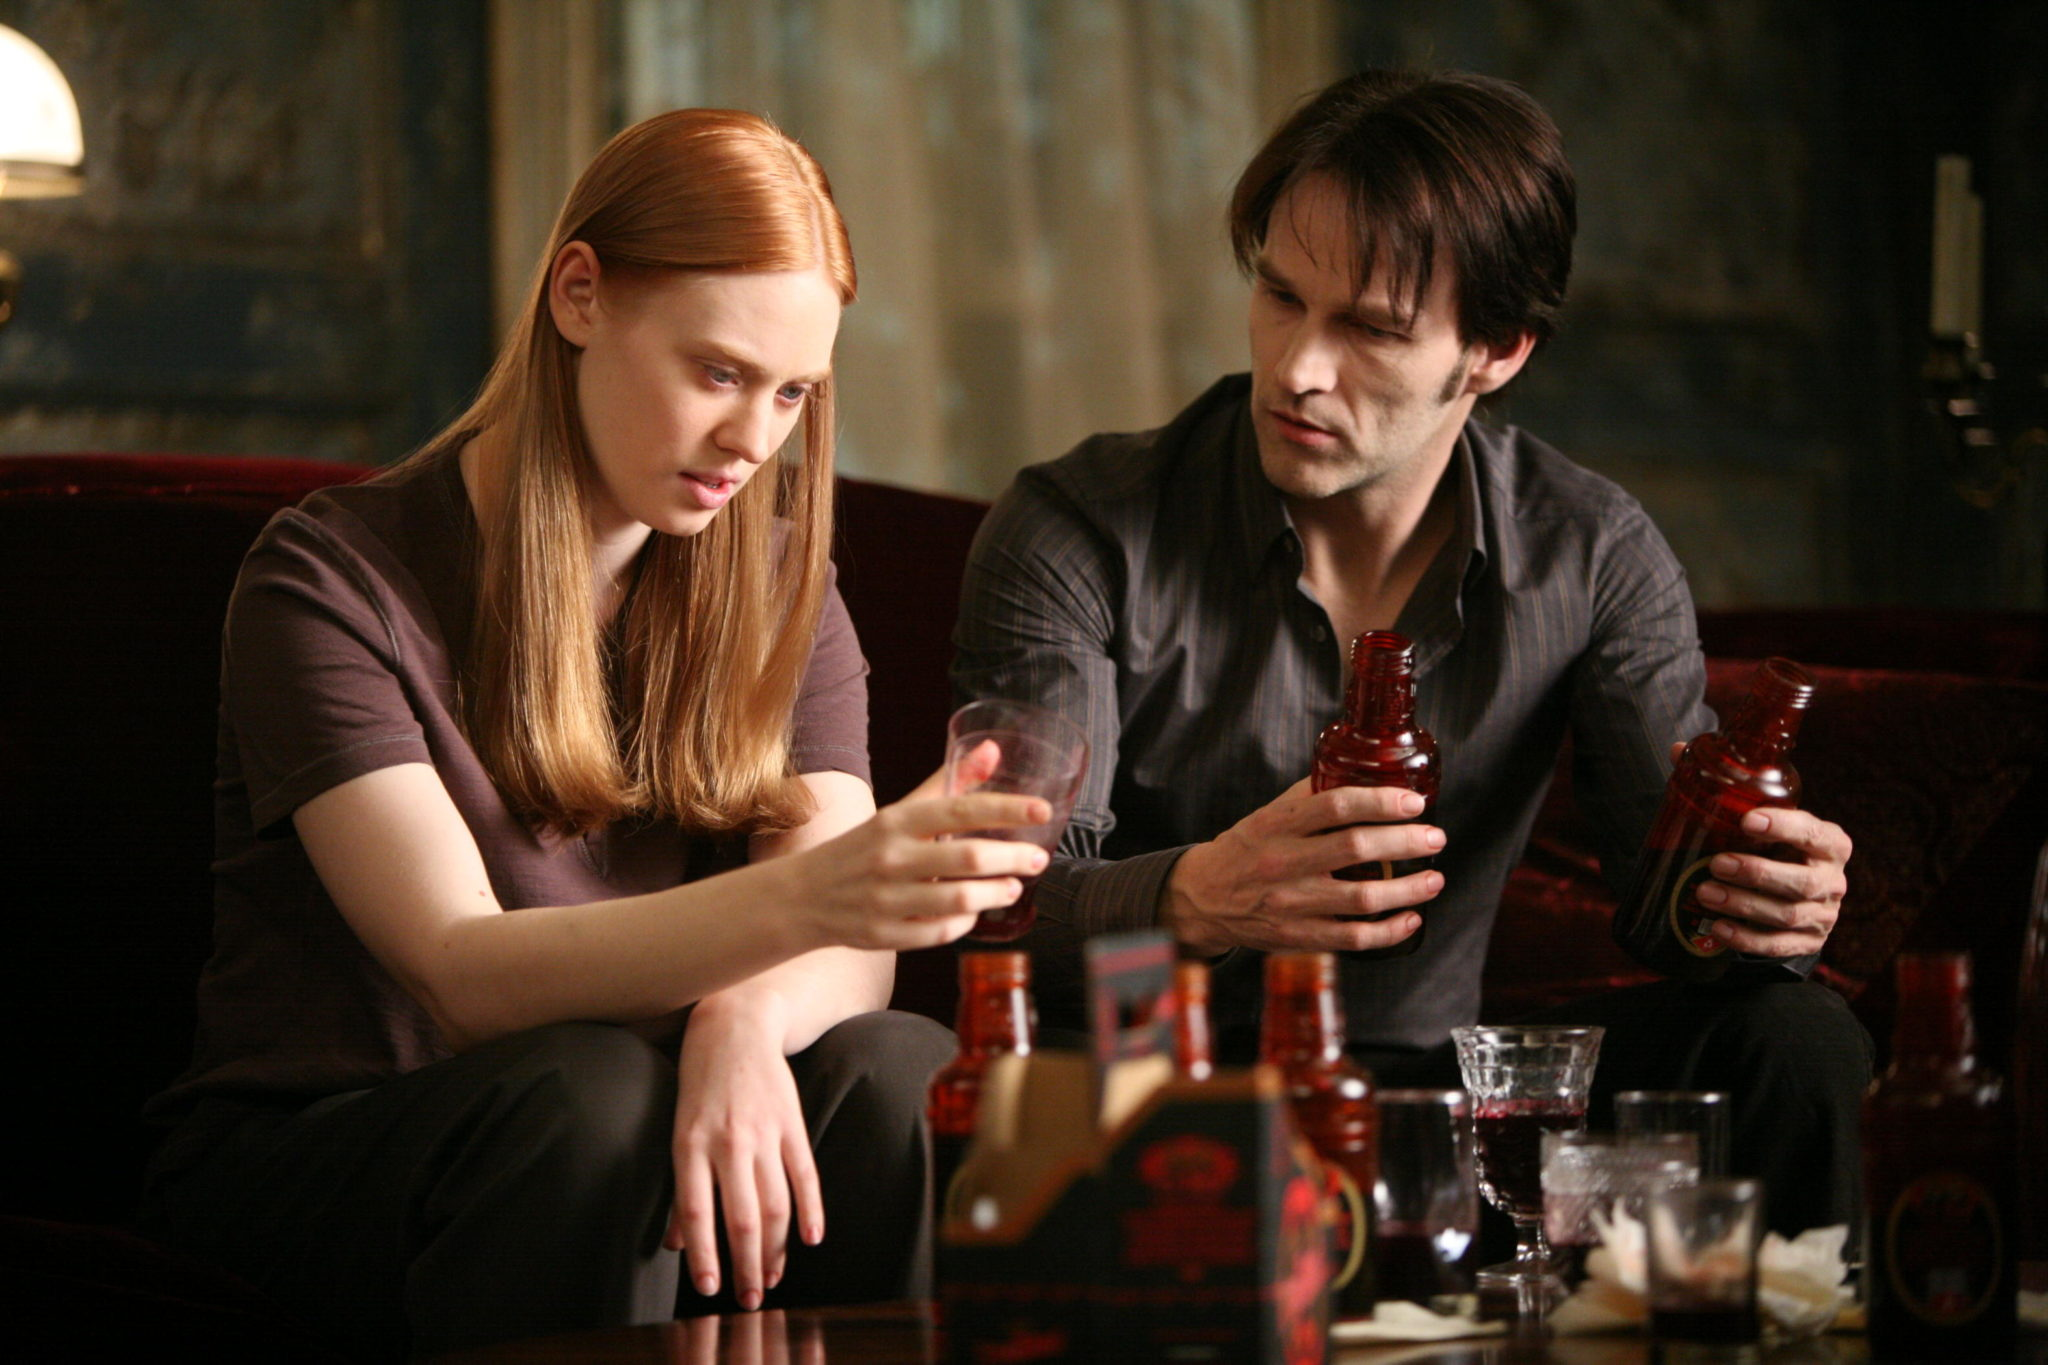 Bill helps Jessica adjust to life as a vampire